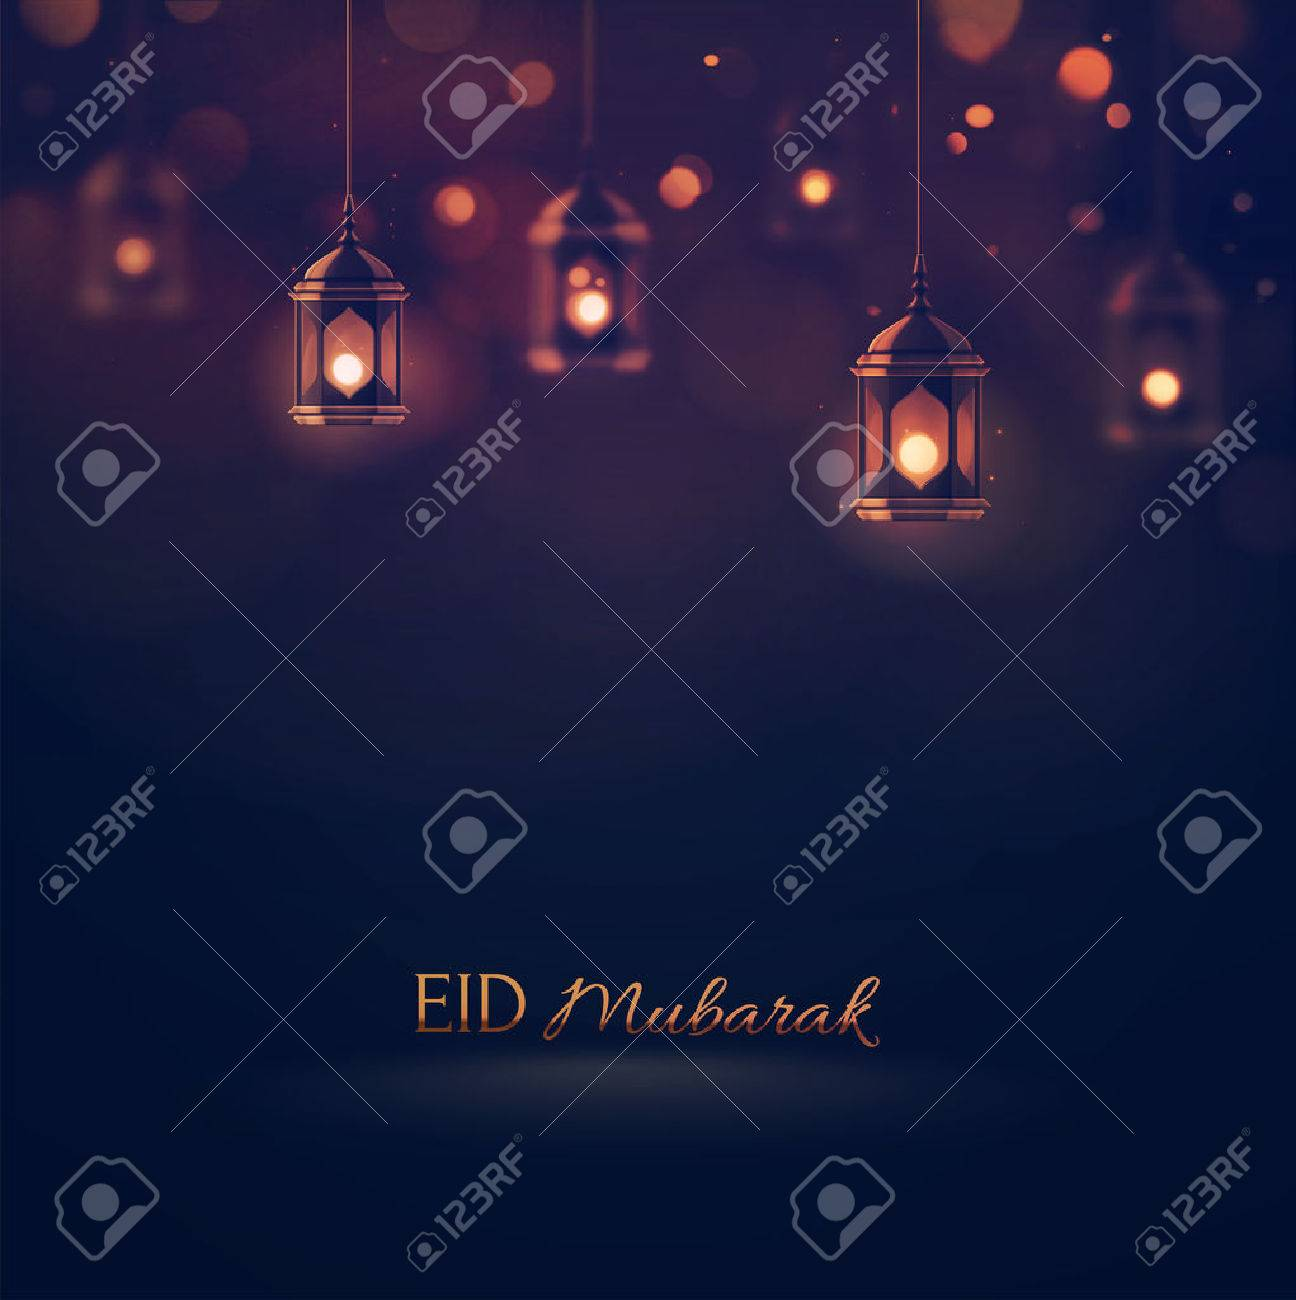 Eid Mubarak, greeting background, Standard-Bild - 41579333